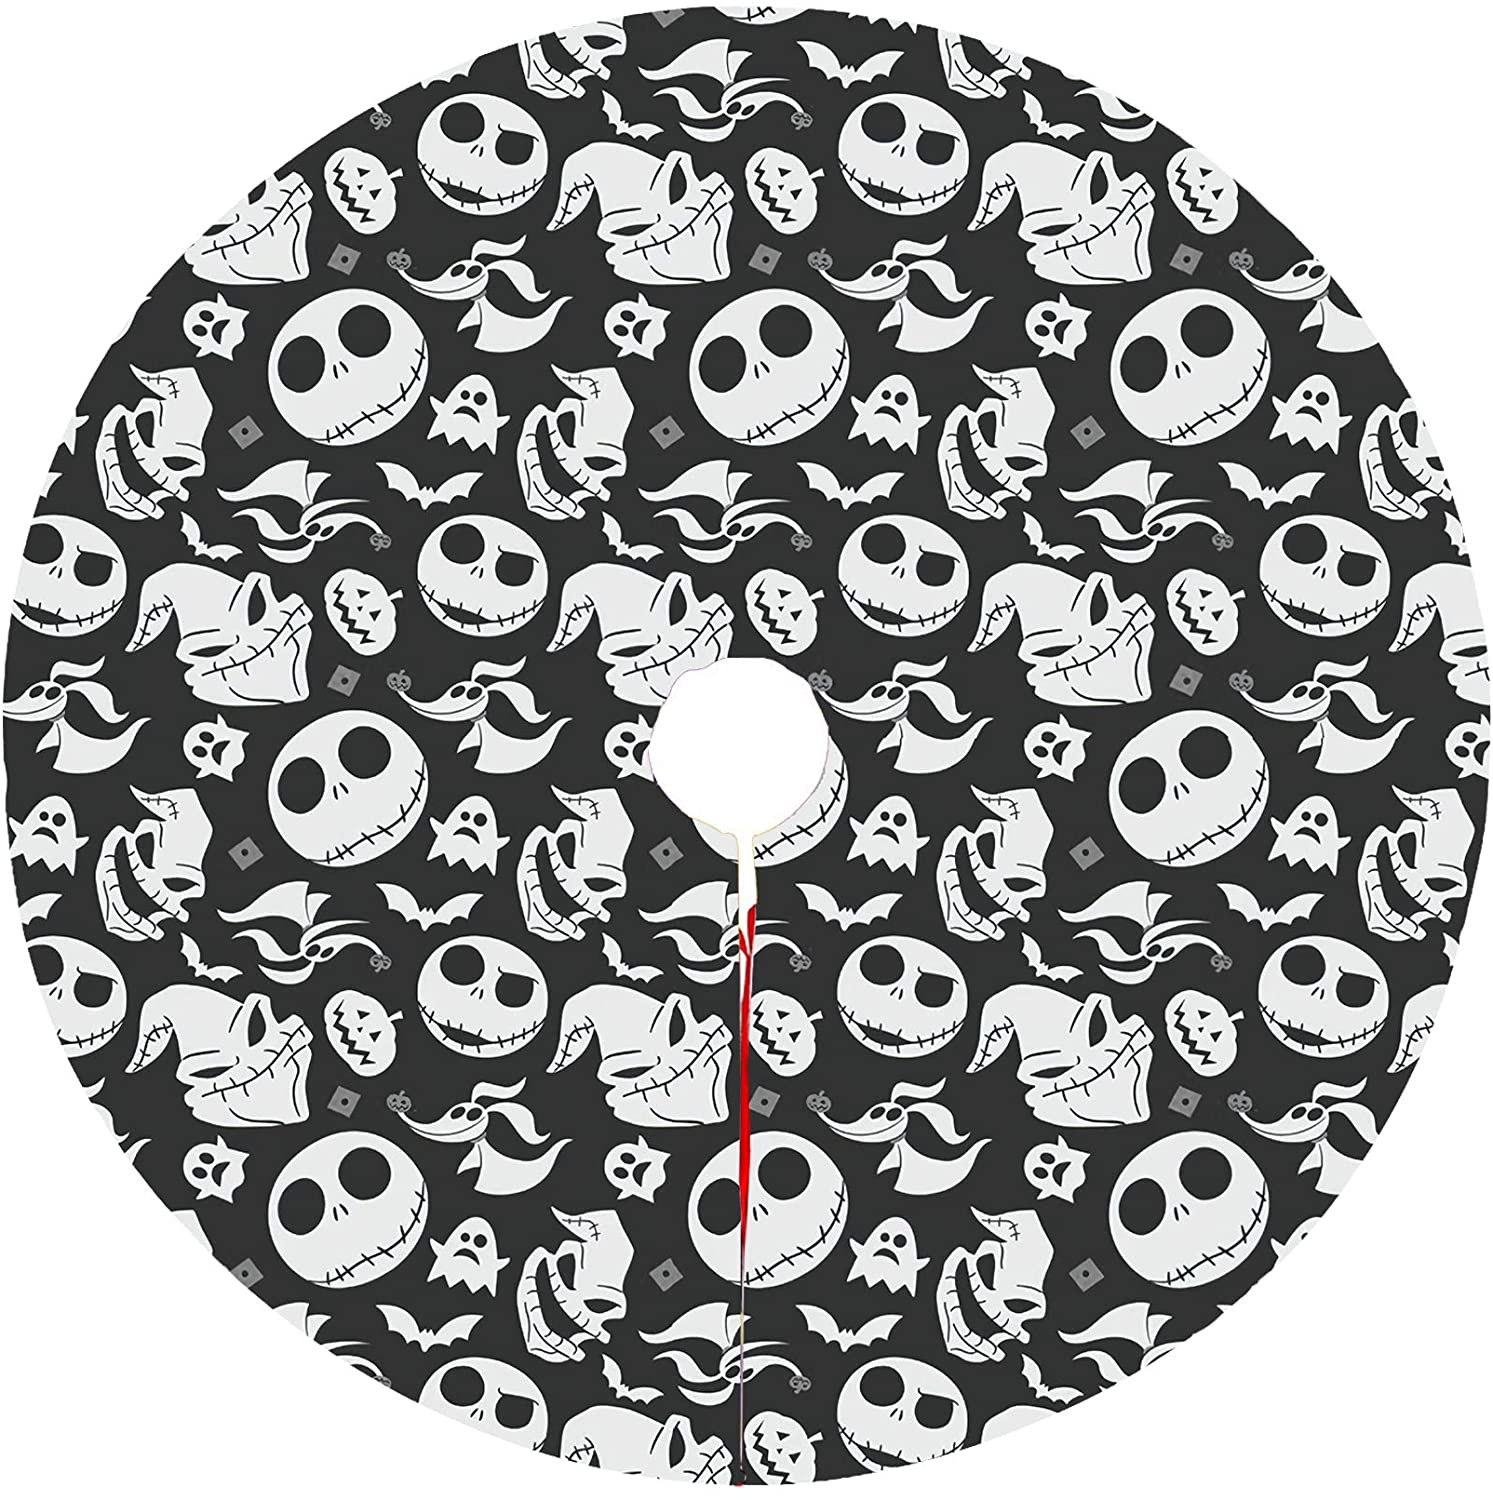 The Nightmare Before Christmas Christmas Tree Skirt Kits Mat Decorations Large Trees Group Soft And Light Easy To Put In Home Office Livingroom For Xmas Halloween Holiday Party Decoration 36in